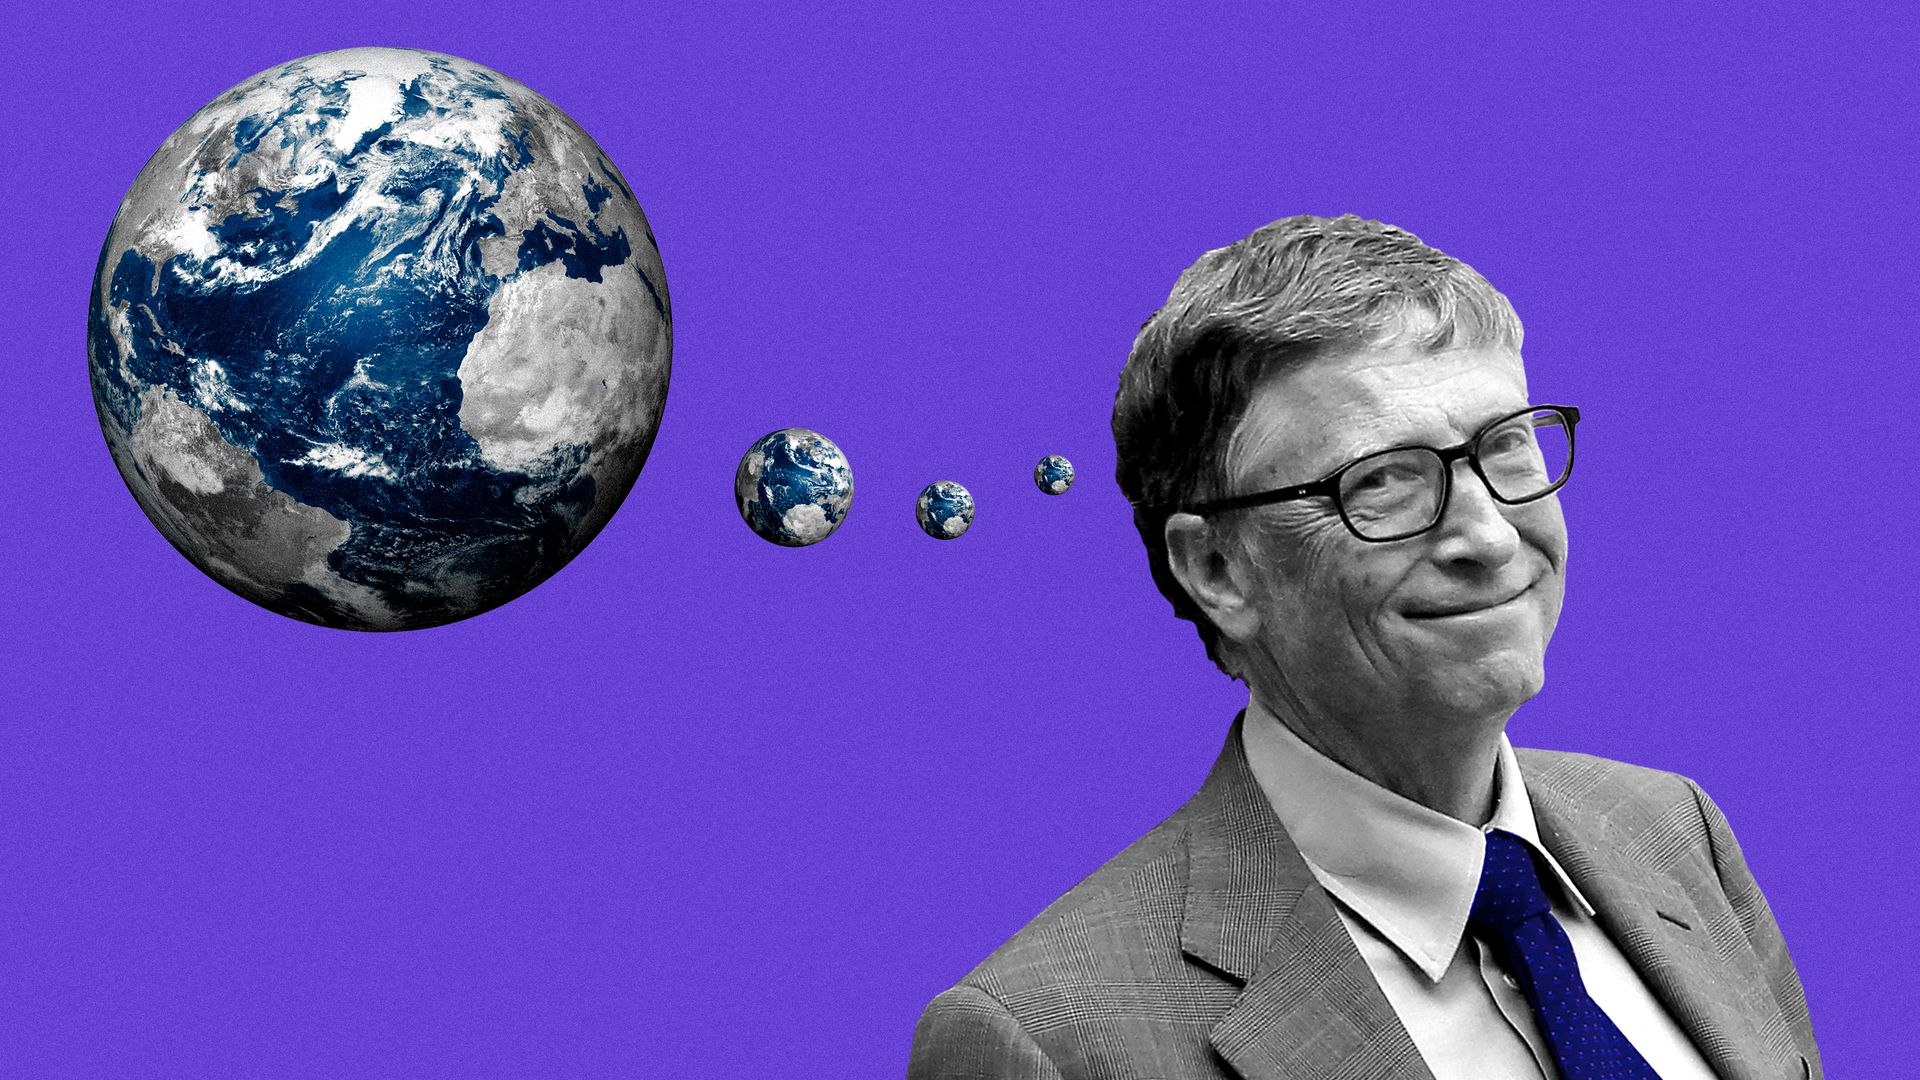 Bill Gates with a thought bubble showing the Earth